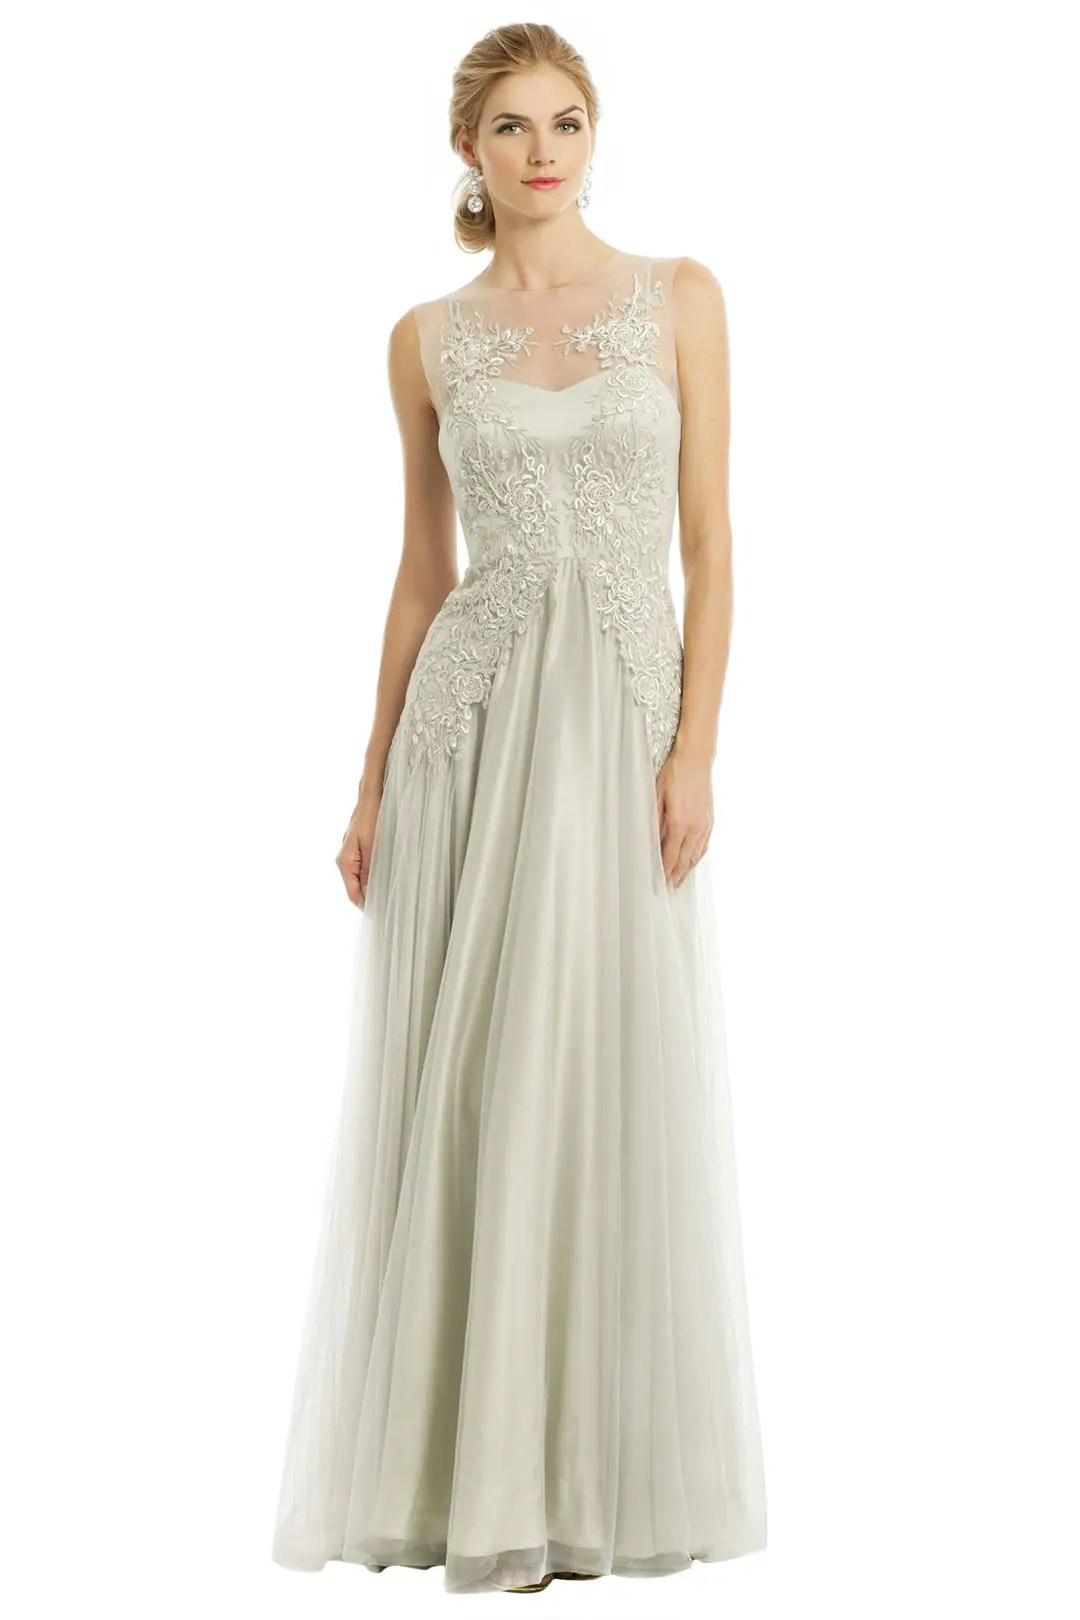 ritagown wedding dresses for rent